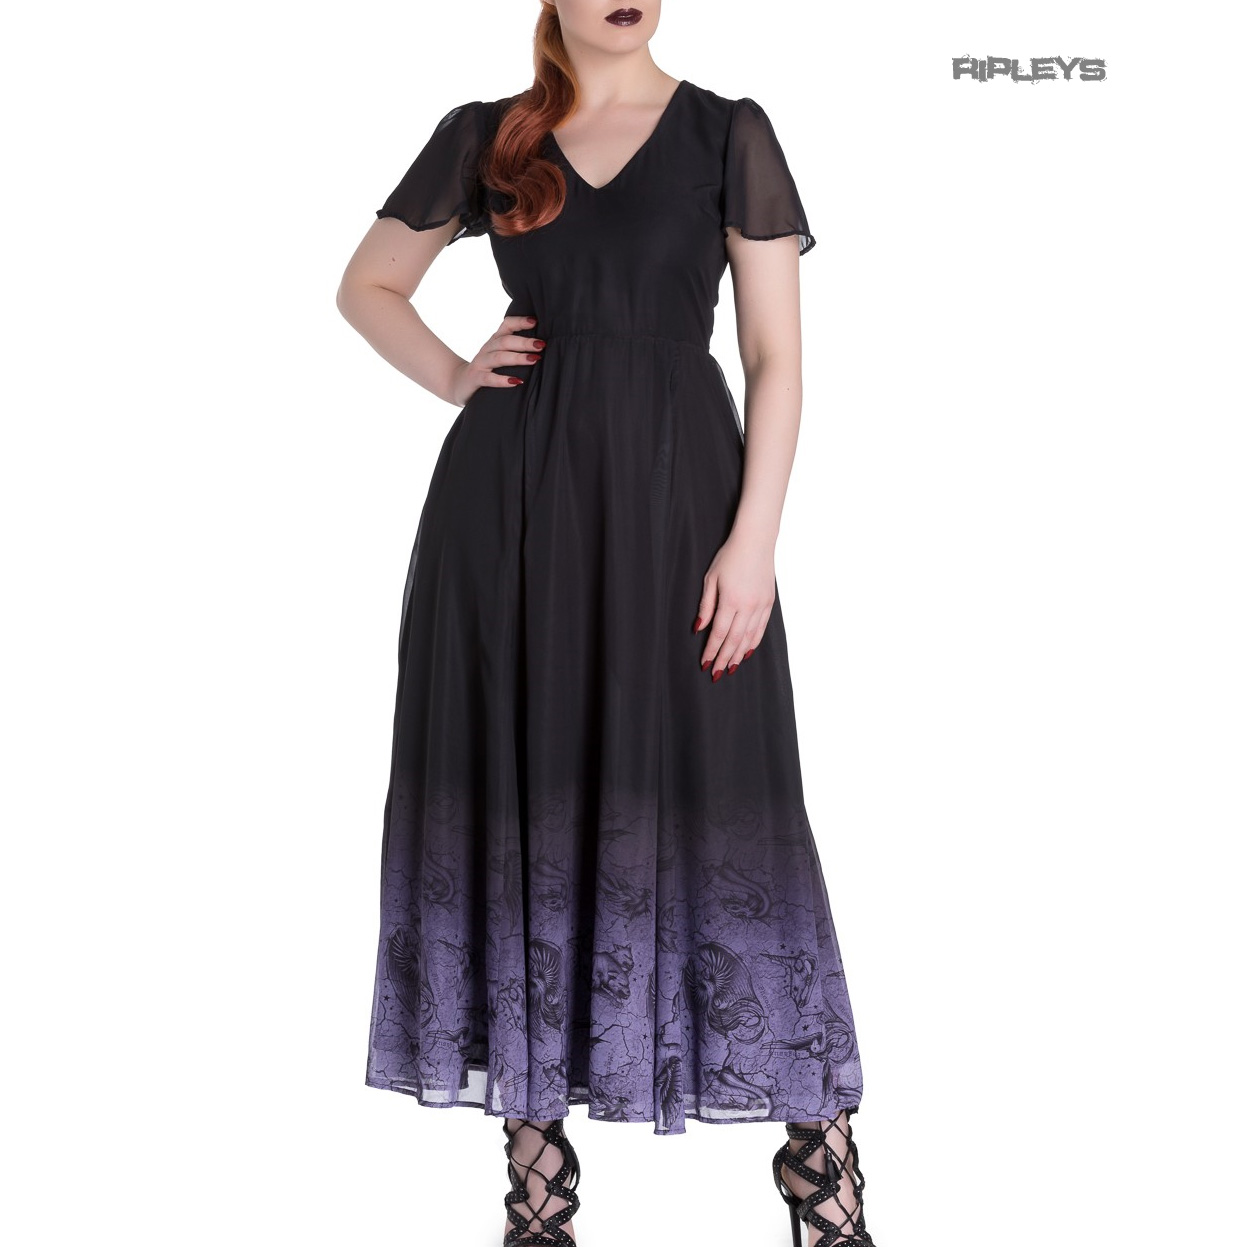 Hell-Bunny-Spin-Doctor-Goth-Maxi-Dress-EVADINE-Purple-Black-All-Sizes thumbnail 6